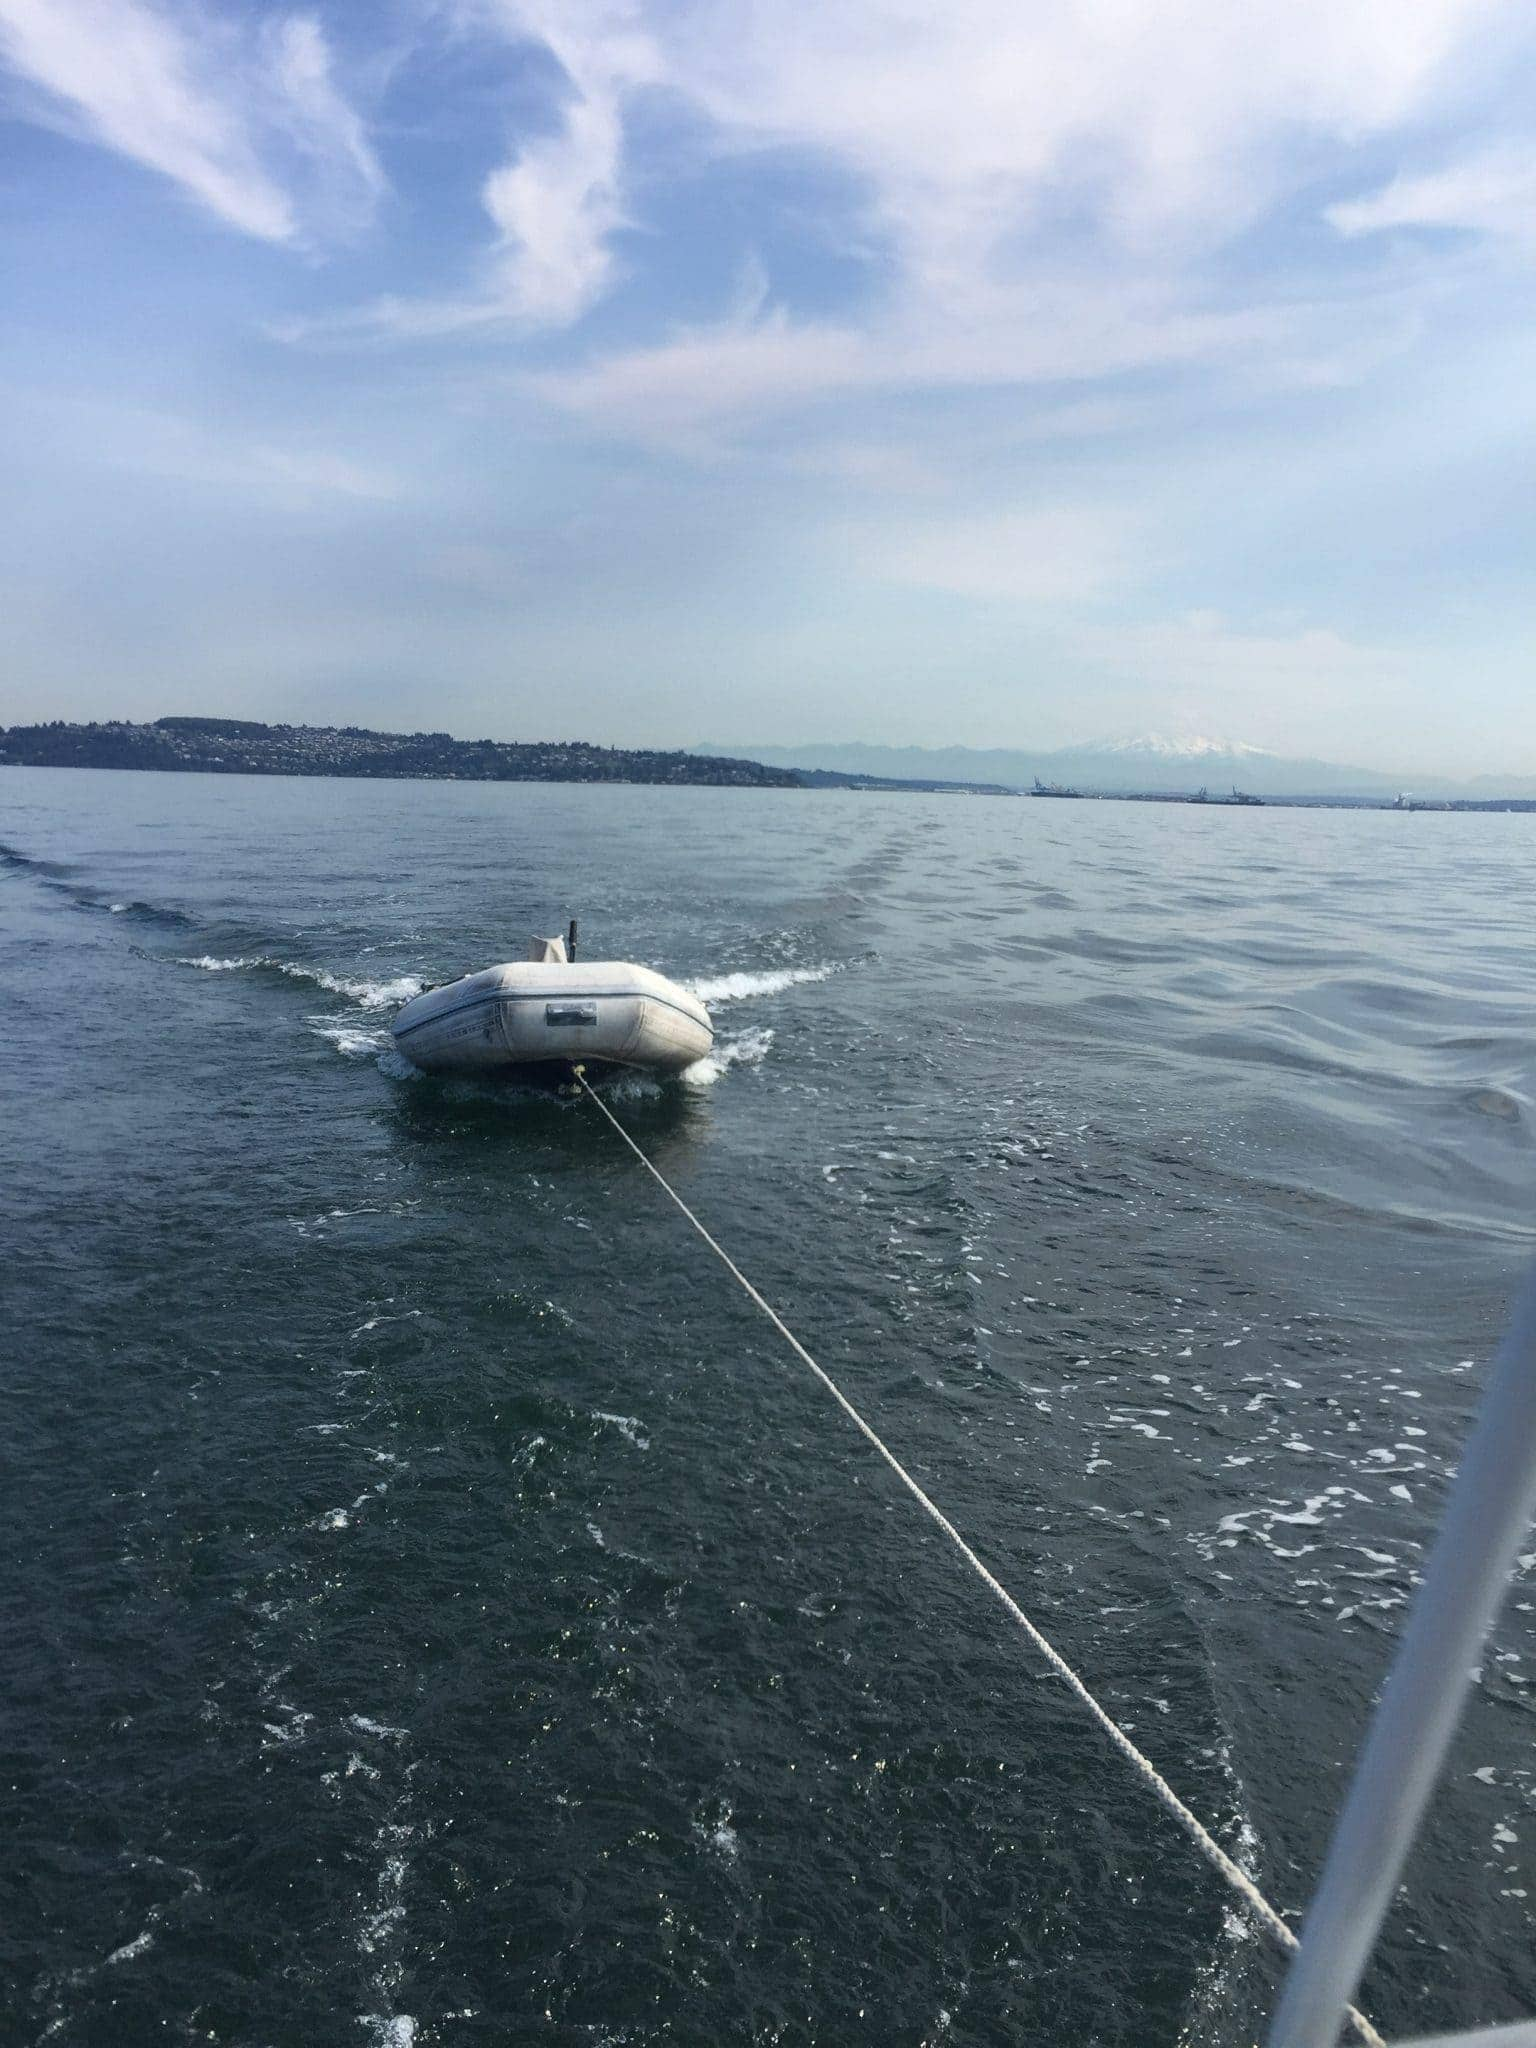 Our new dinghy in tow